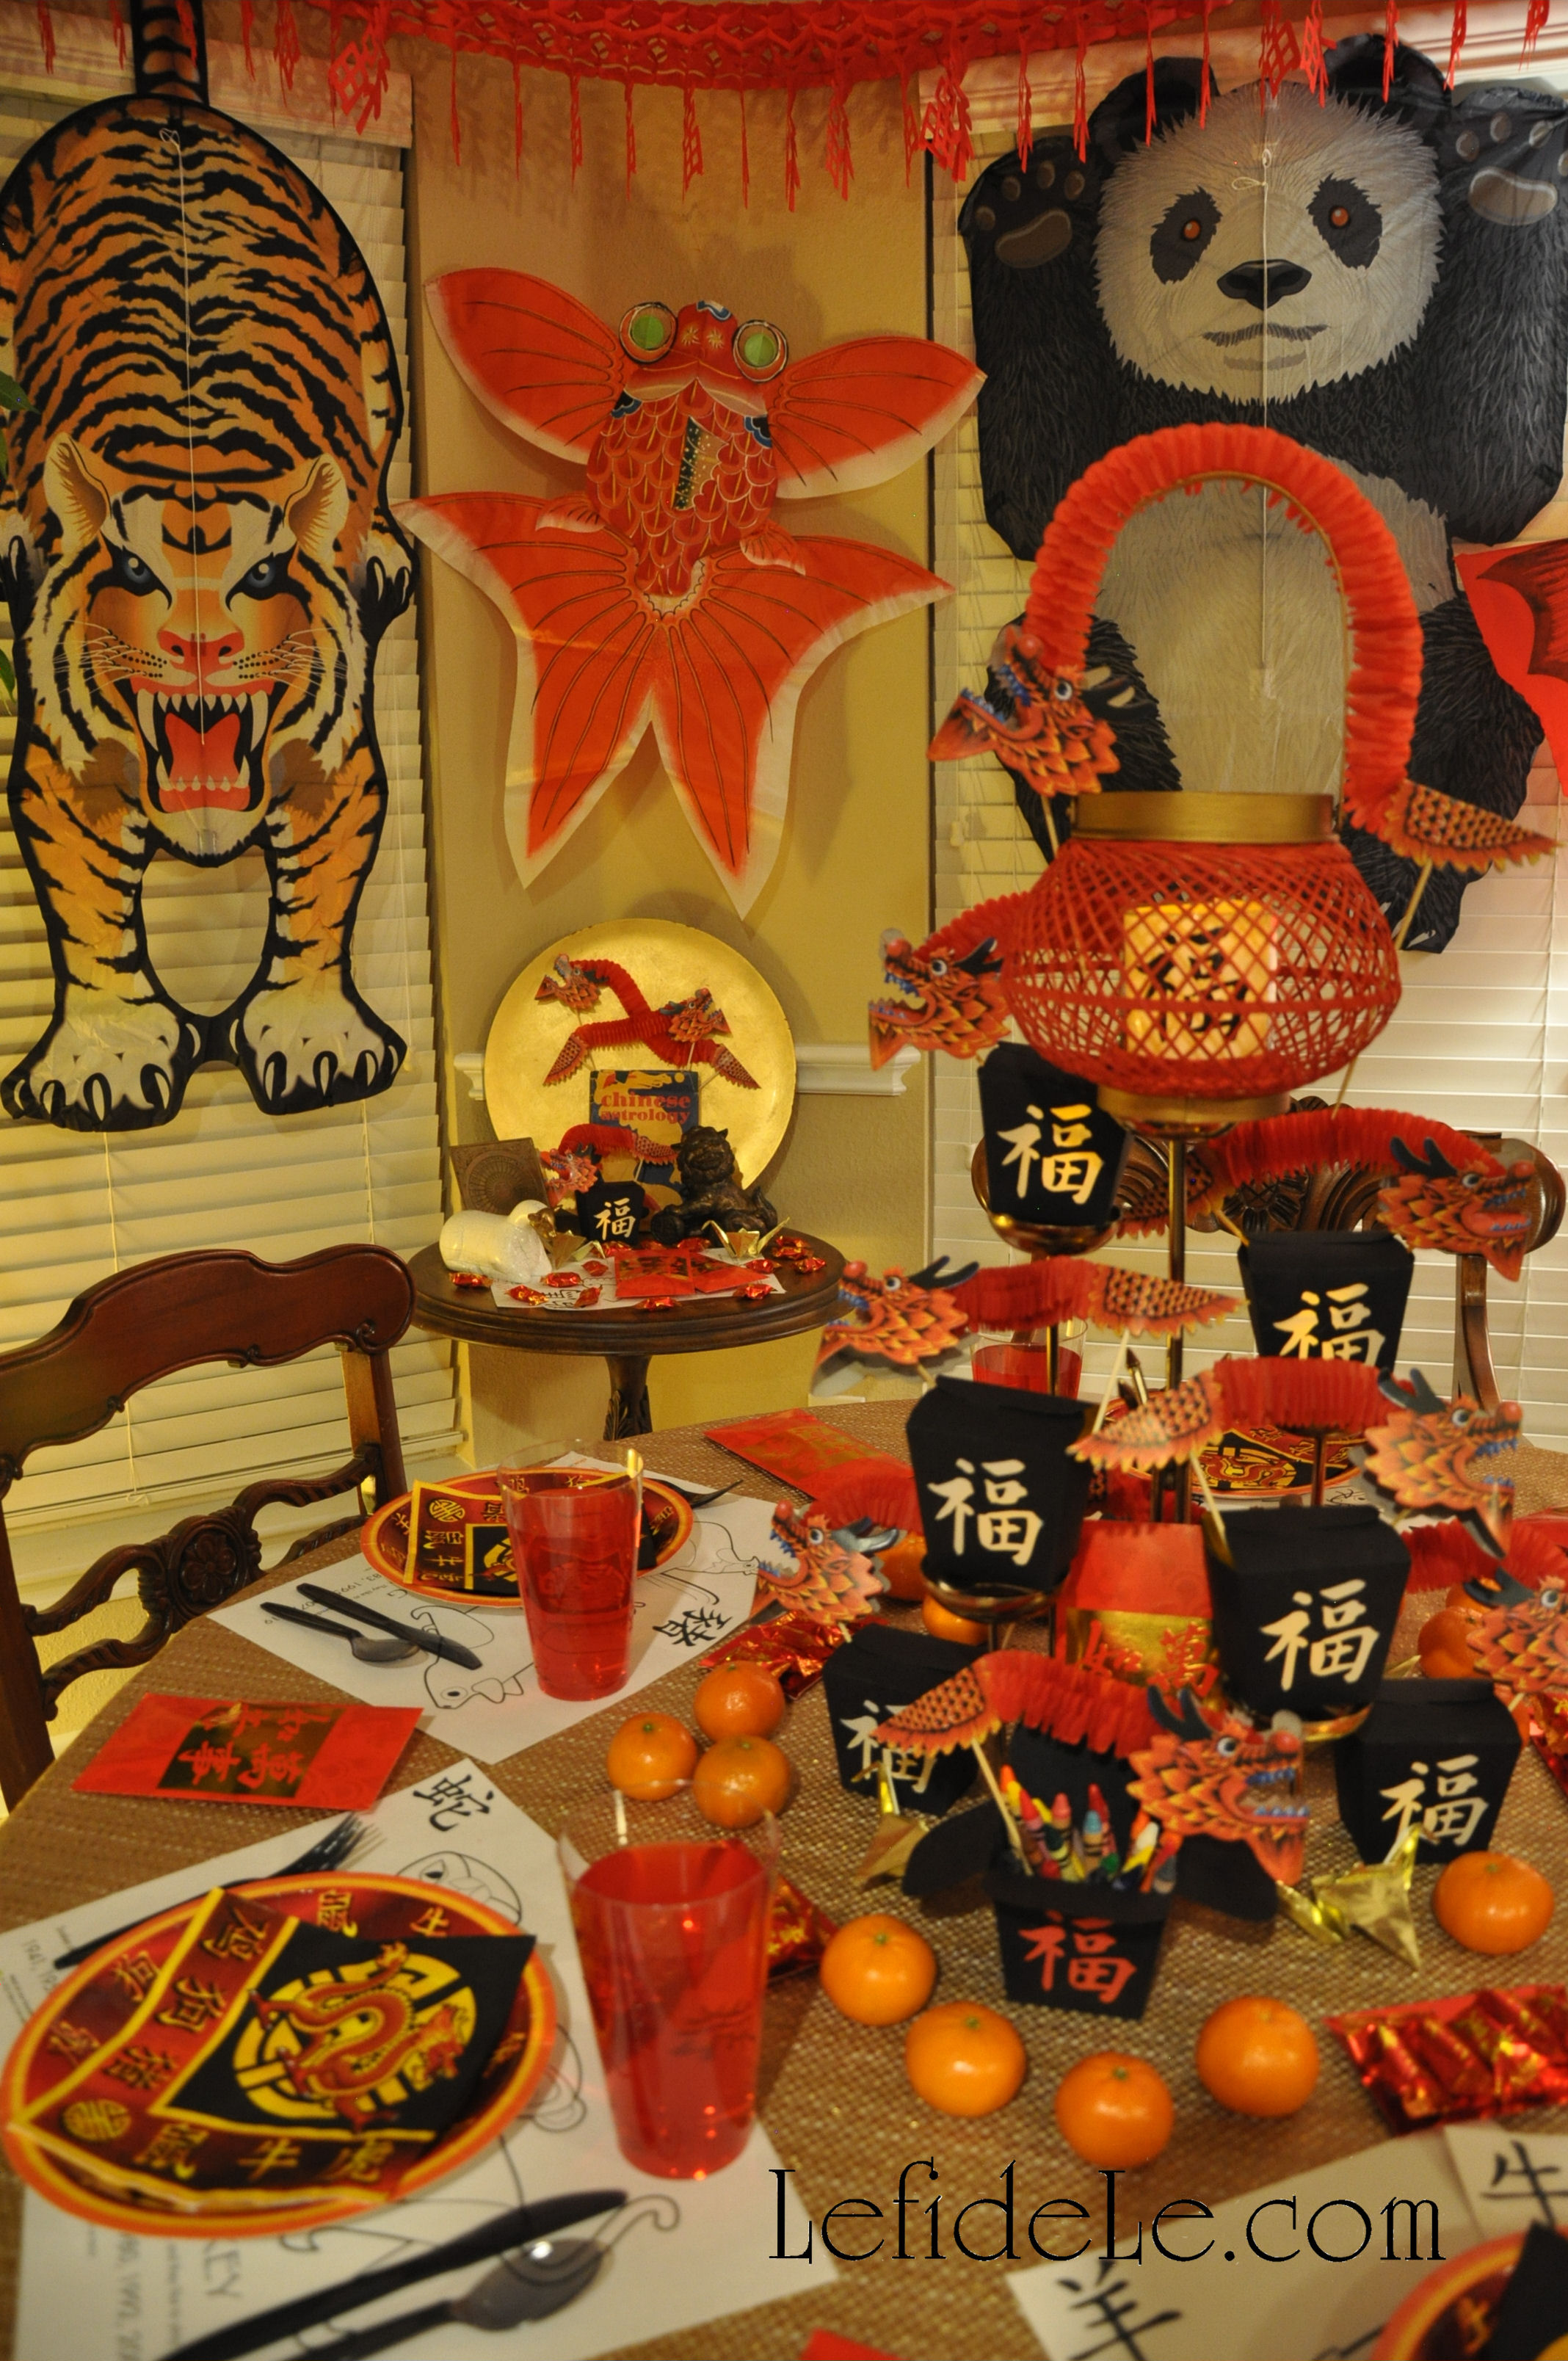 Modern chinese new year table setting - Celebrating Chinese New Year Is Always Fun As Each Year Comes With A New Built In Theme To Accompany The Vibrant Traditional Colors And Motifs